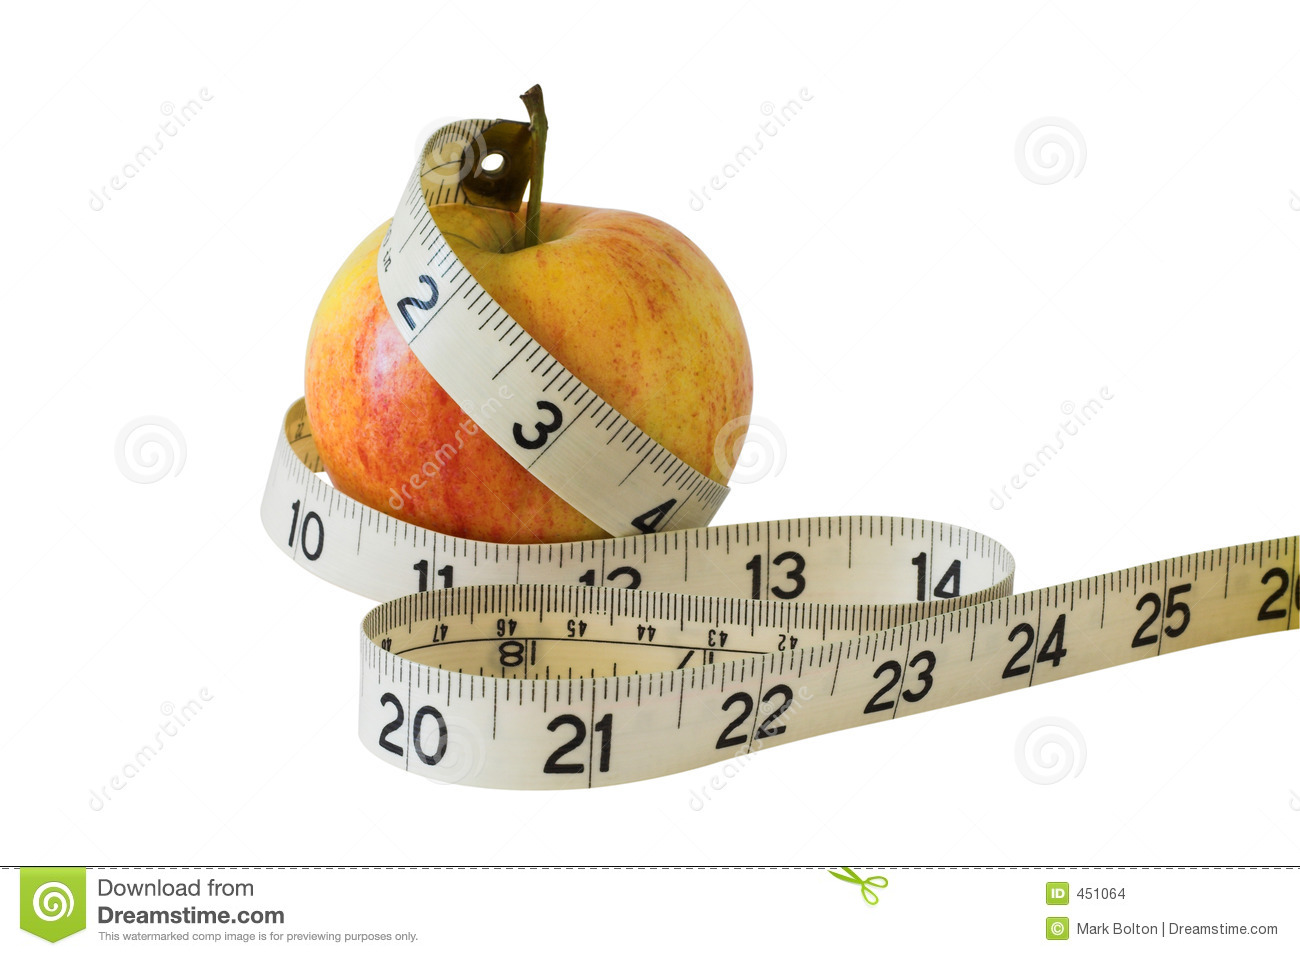 Download Healthy Eating. With Clipping Path. Stock Photo - Image of nutrition, figure: 451064